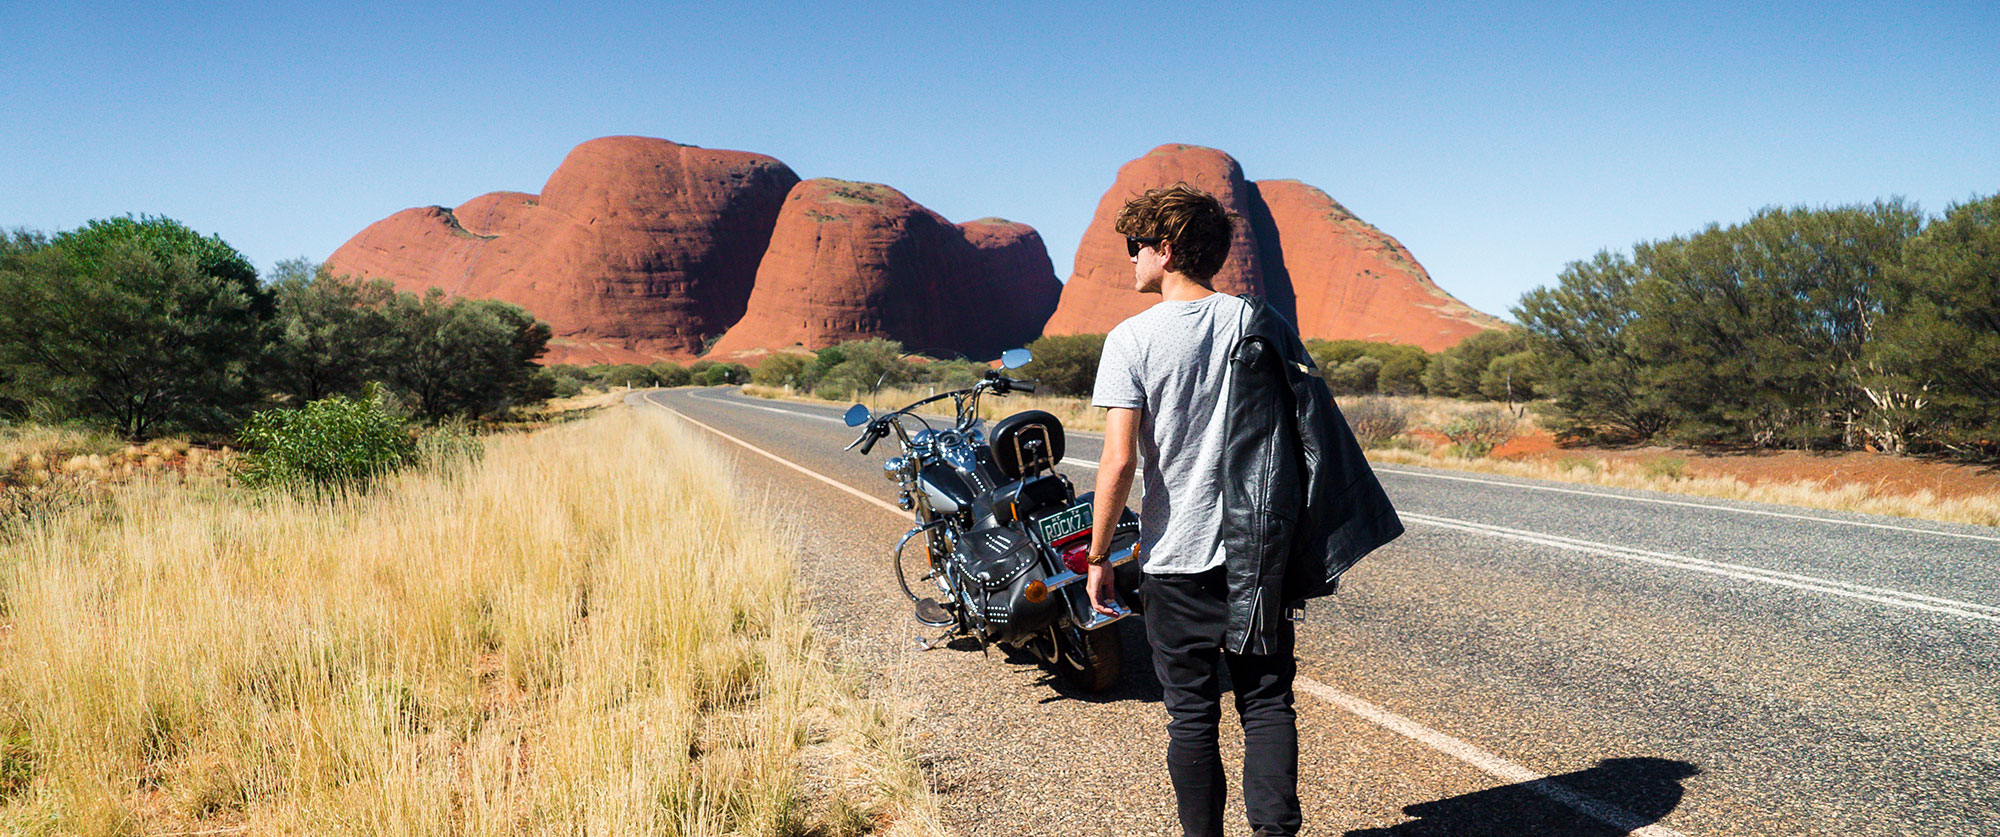 Northern Territory Motorcycle Tour, Australian Outback